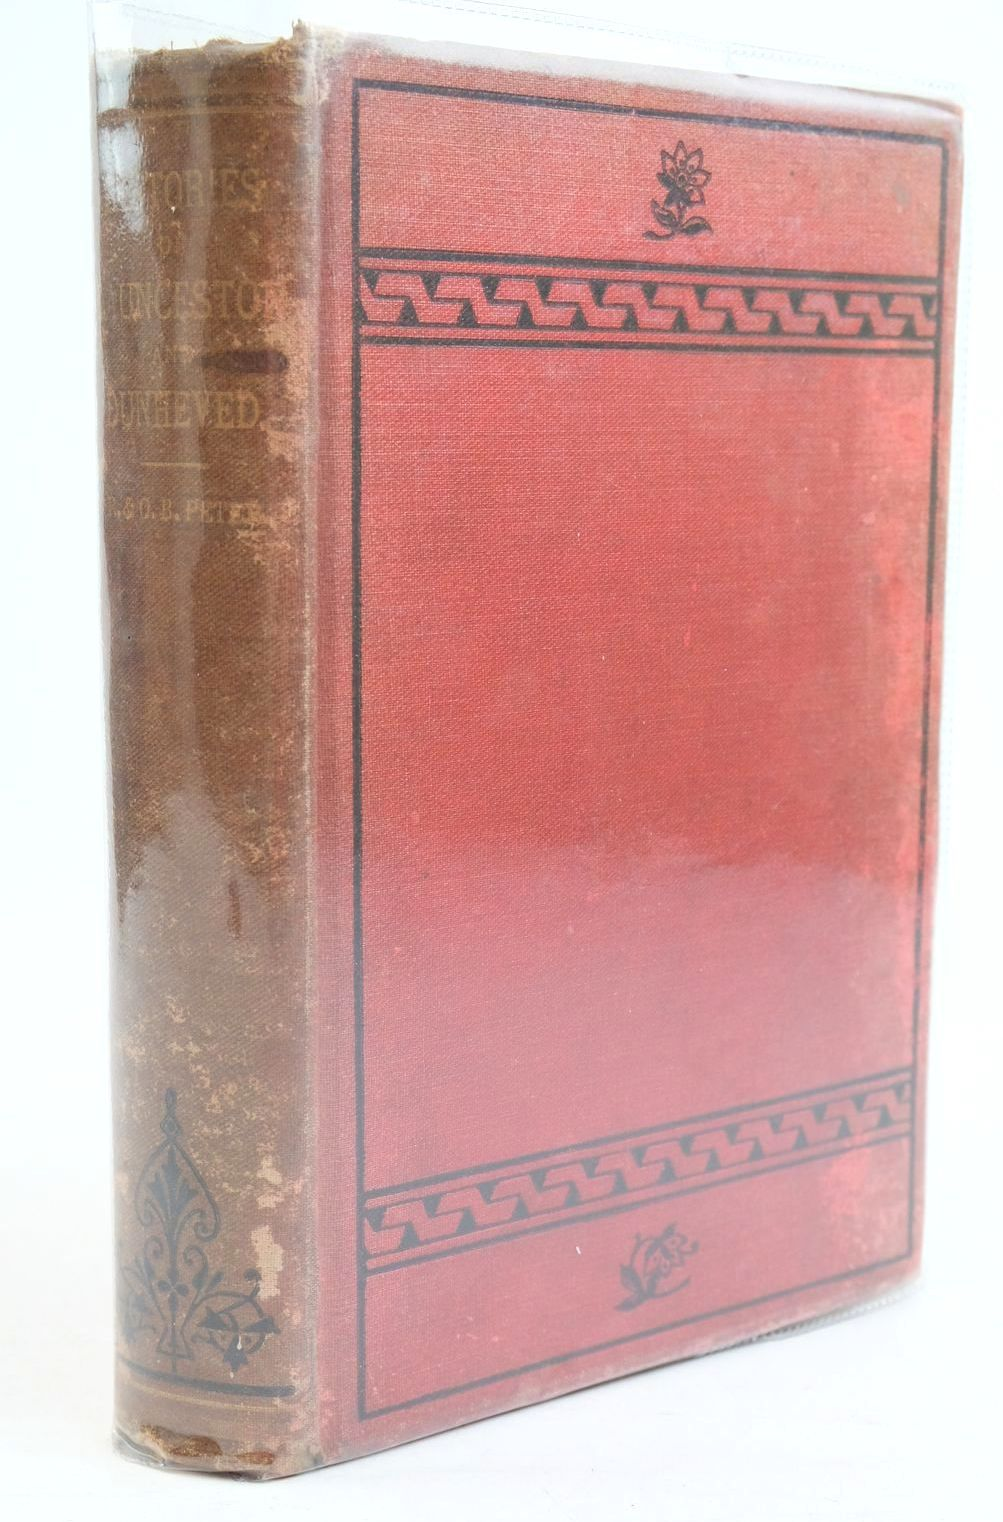 Photo of THE HISTORIES OF LAUNCESTON AND DUNHEVED- Stock Number: 1320882